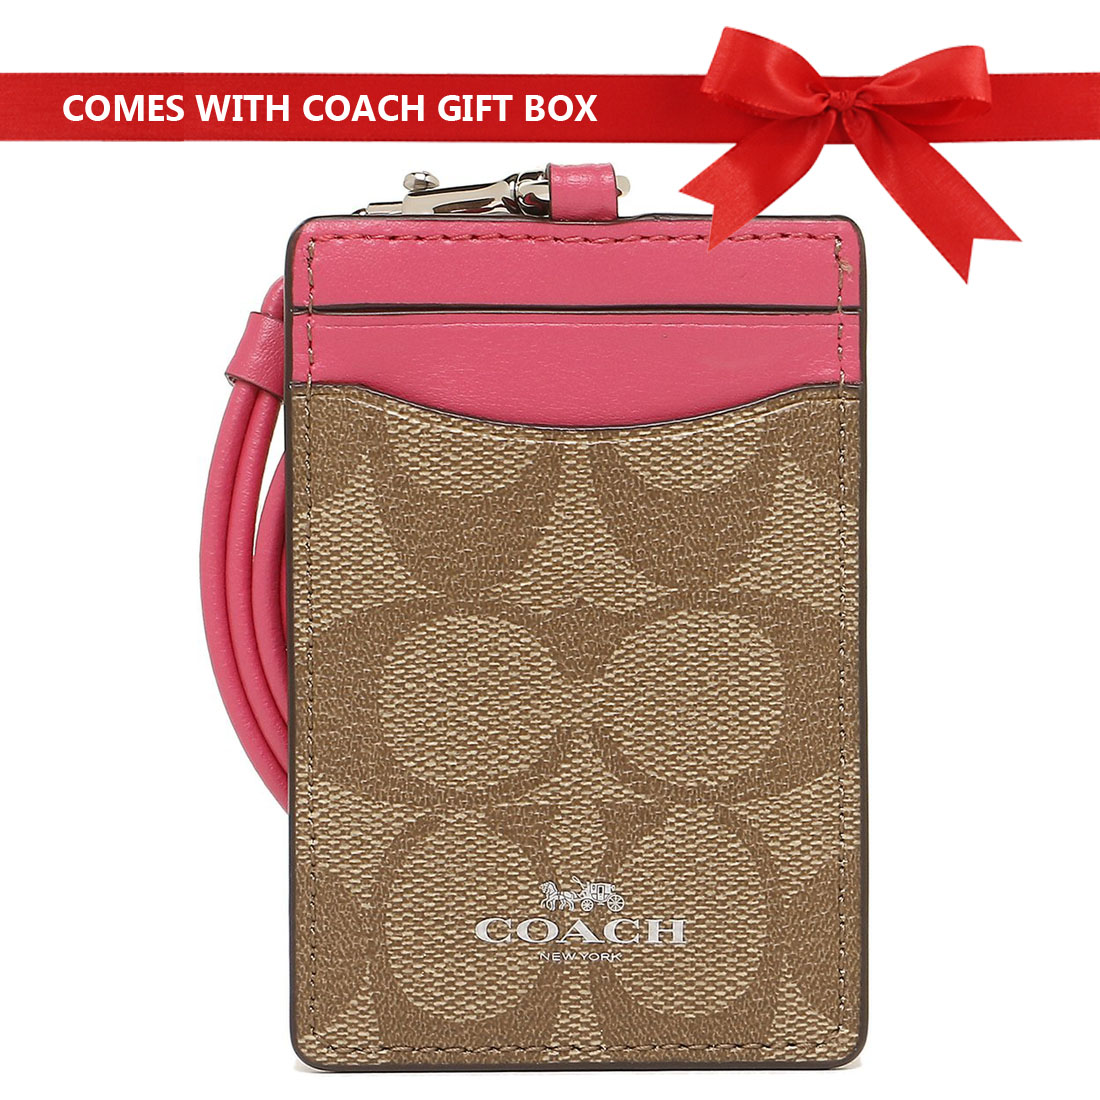 Coach Lanyard In Signature Canvas With Gift Box Khaki / Magenta Pink / Silver # F63274